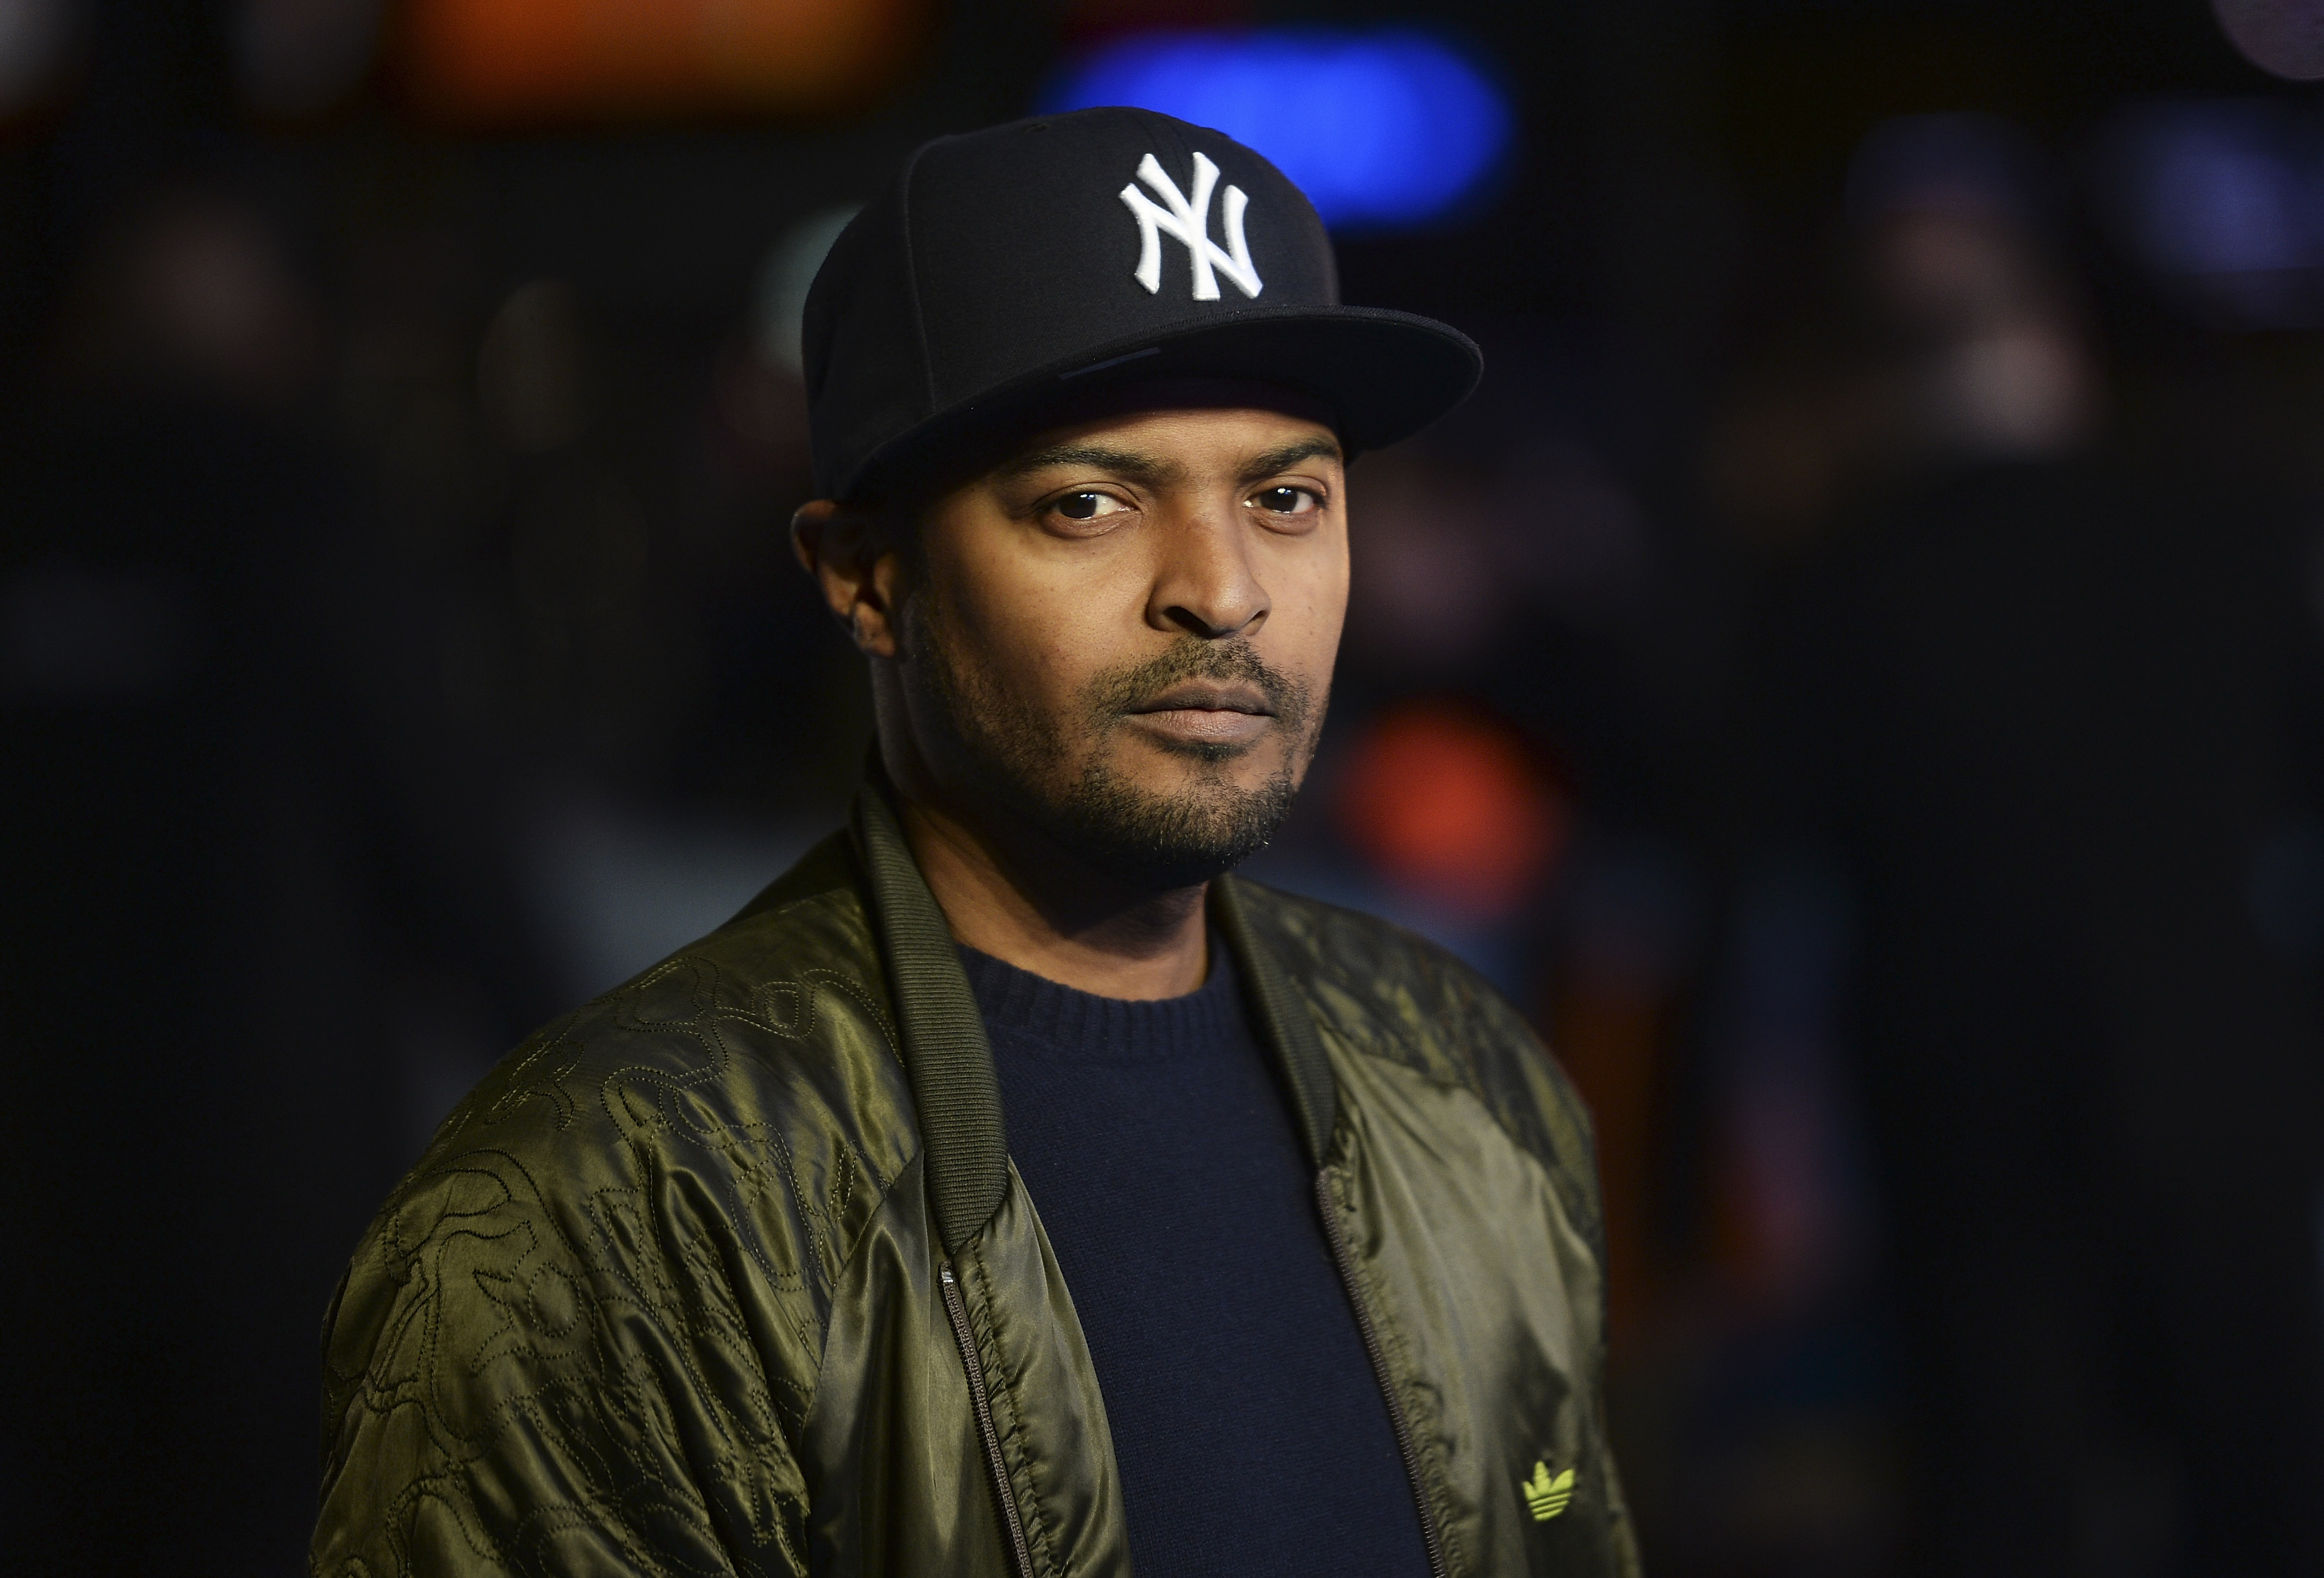 Noel Clarke, European premiere of 'Eddie The Eagle' at Odeon Leicester Square on March 17, 2016 in London, England.